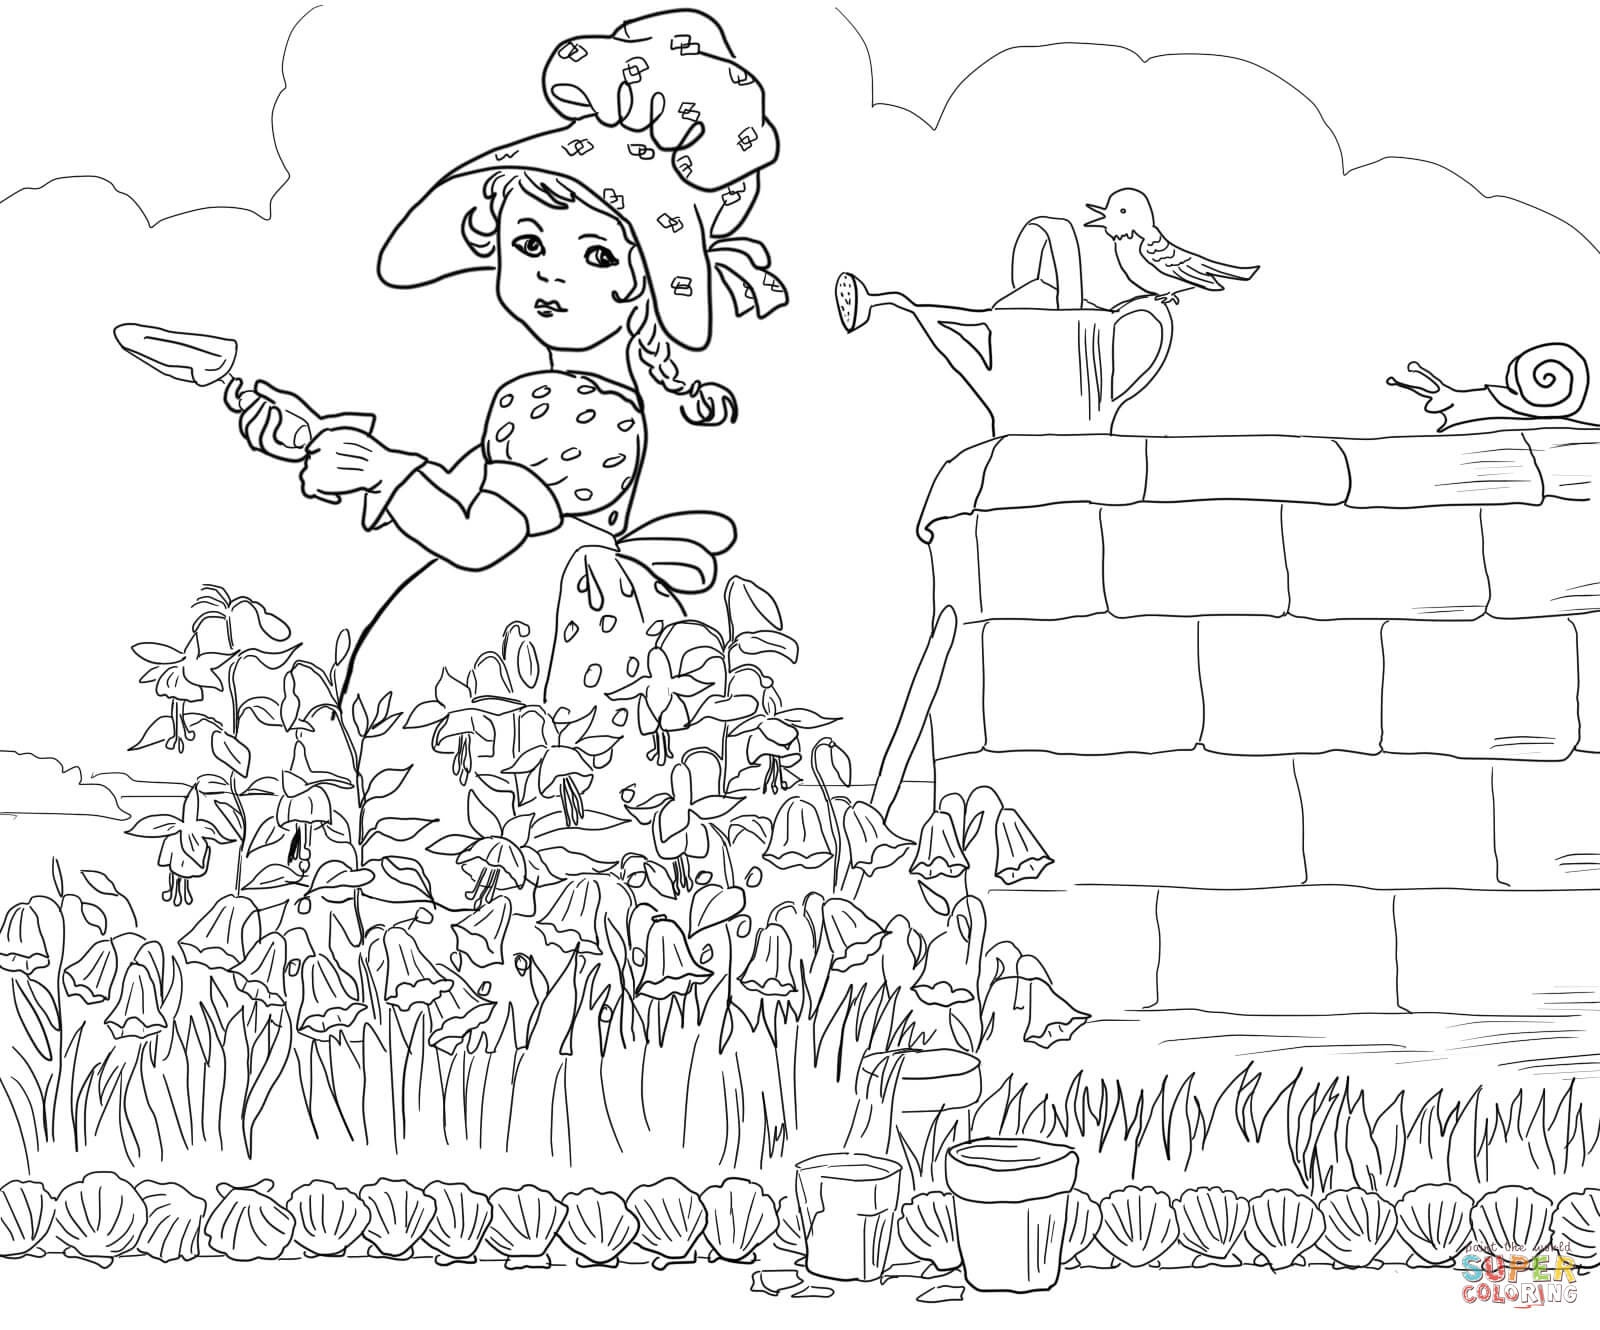 Mary Mary Quite Contrary Nursery Rhyme Coloring Page | Free - Free Printable Nursery Rhyme Coloring Pages